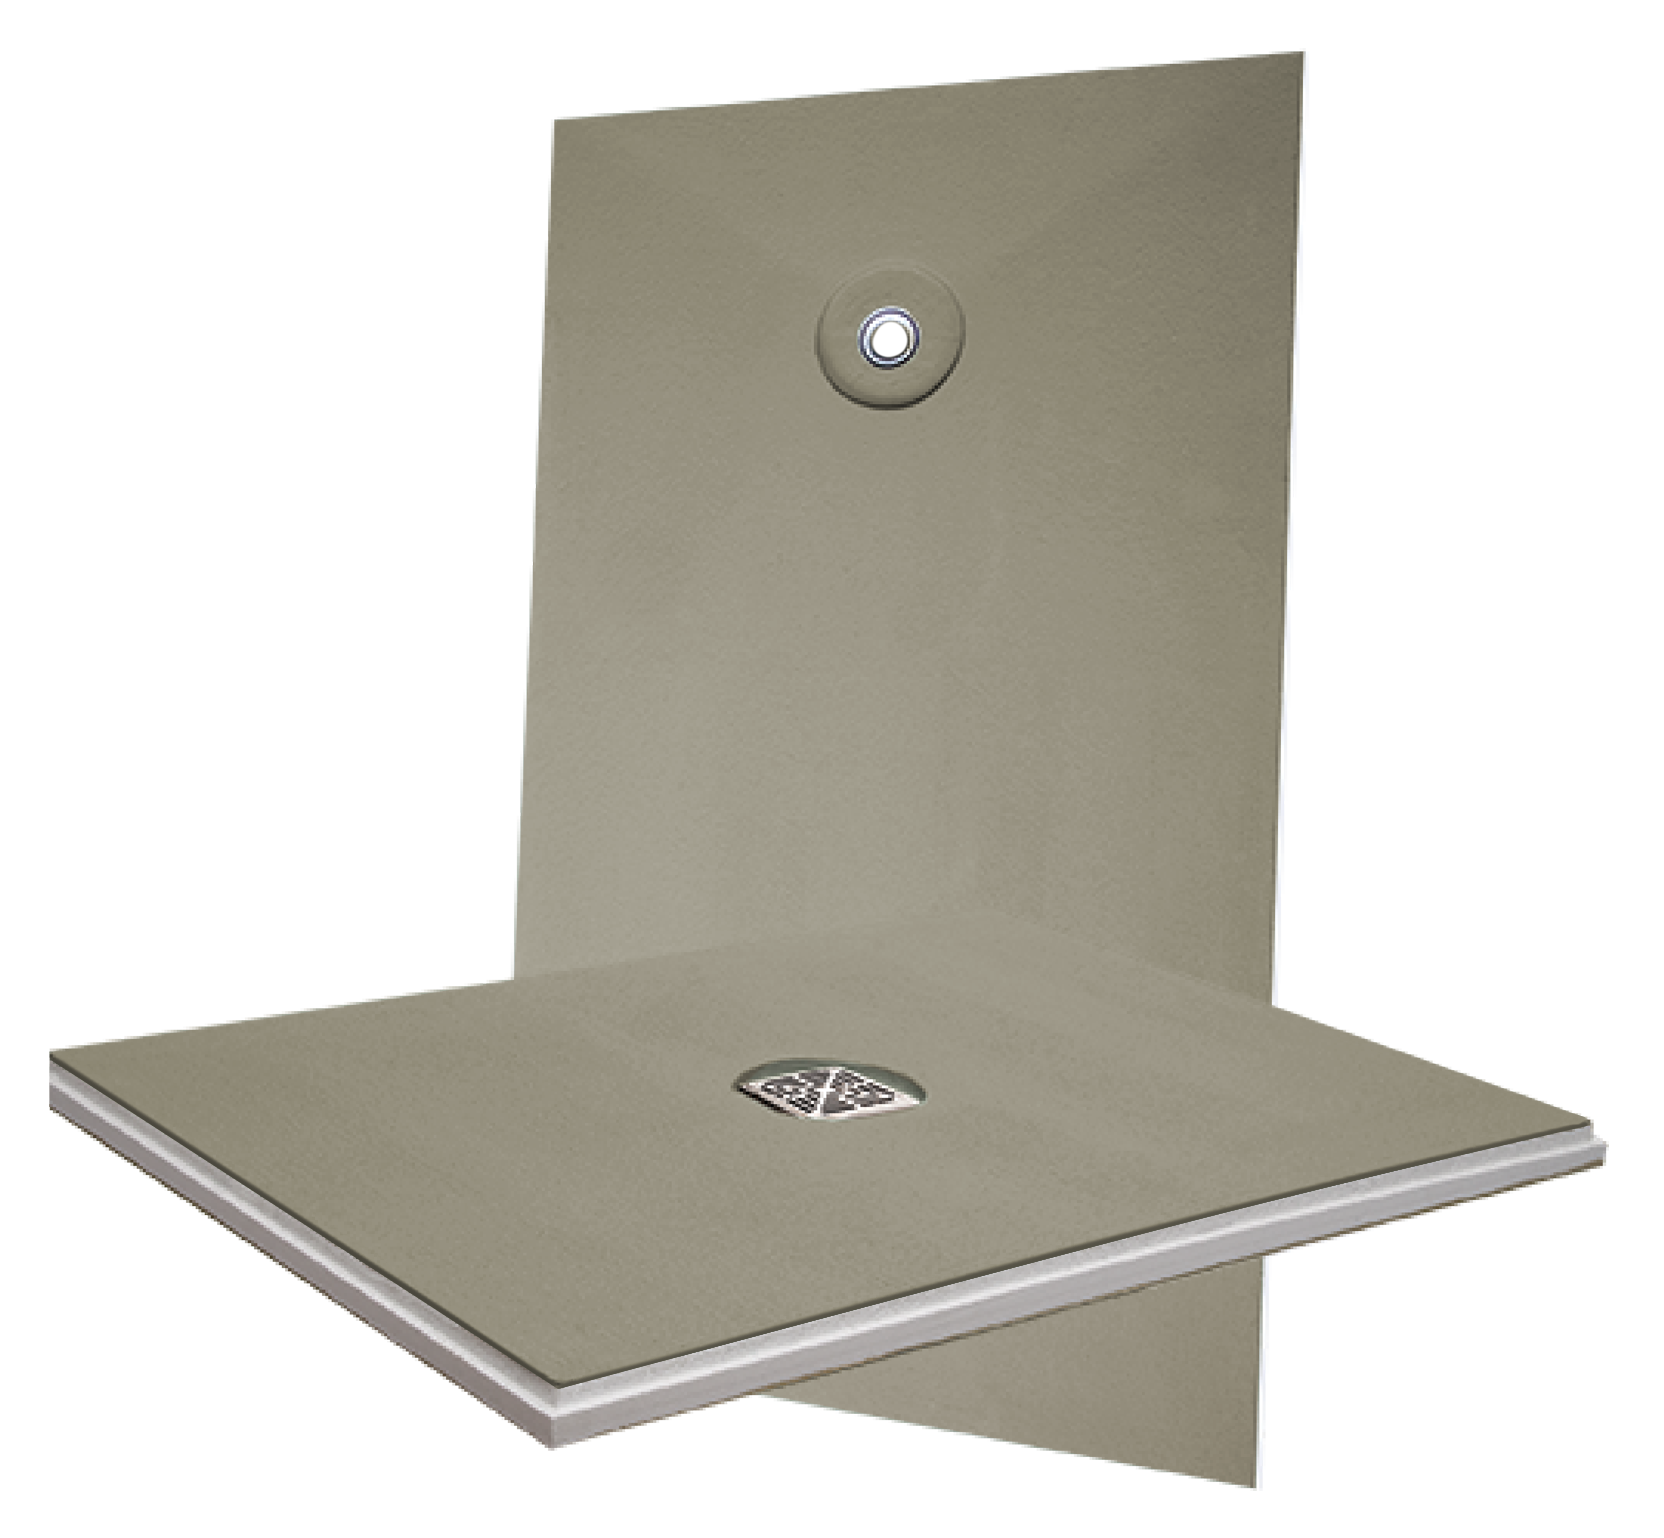 Hydro Ban Pre Sloped Shower Pans Come With A Factory Installed Drain To Connect Directly The Domestic Waste Line And Insure Highest Quality